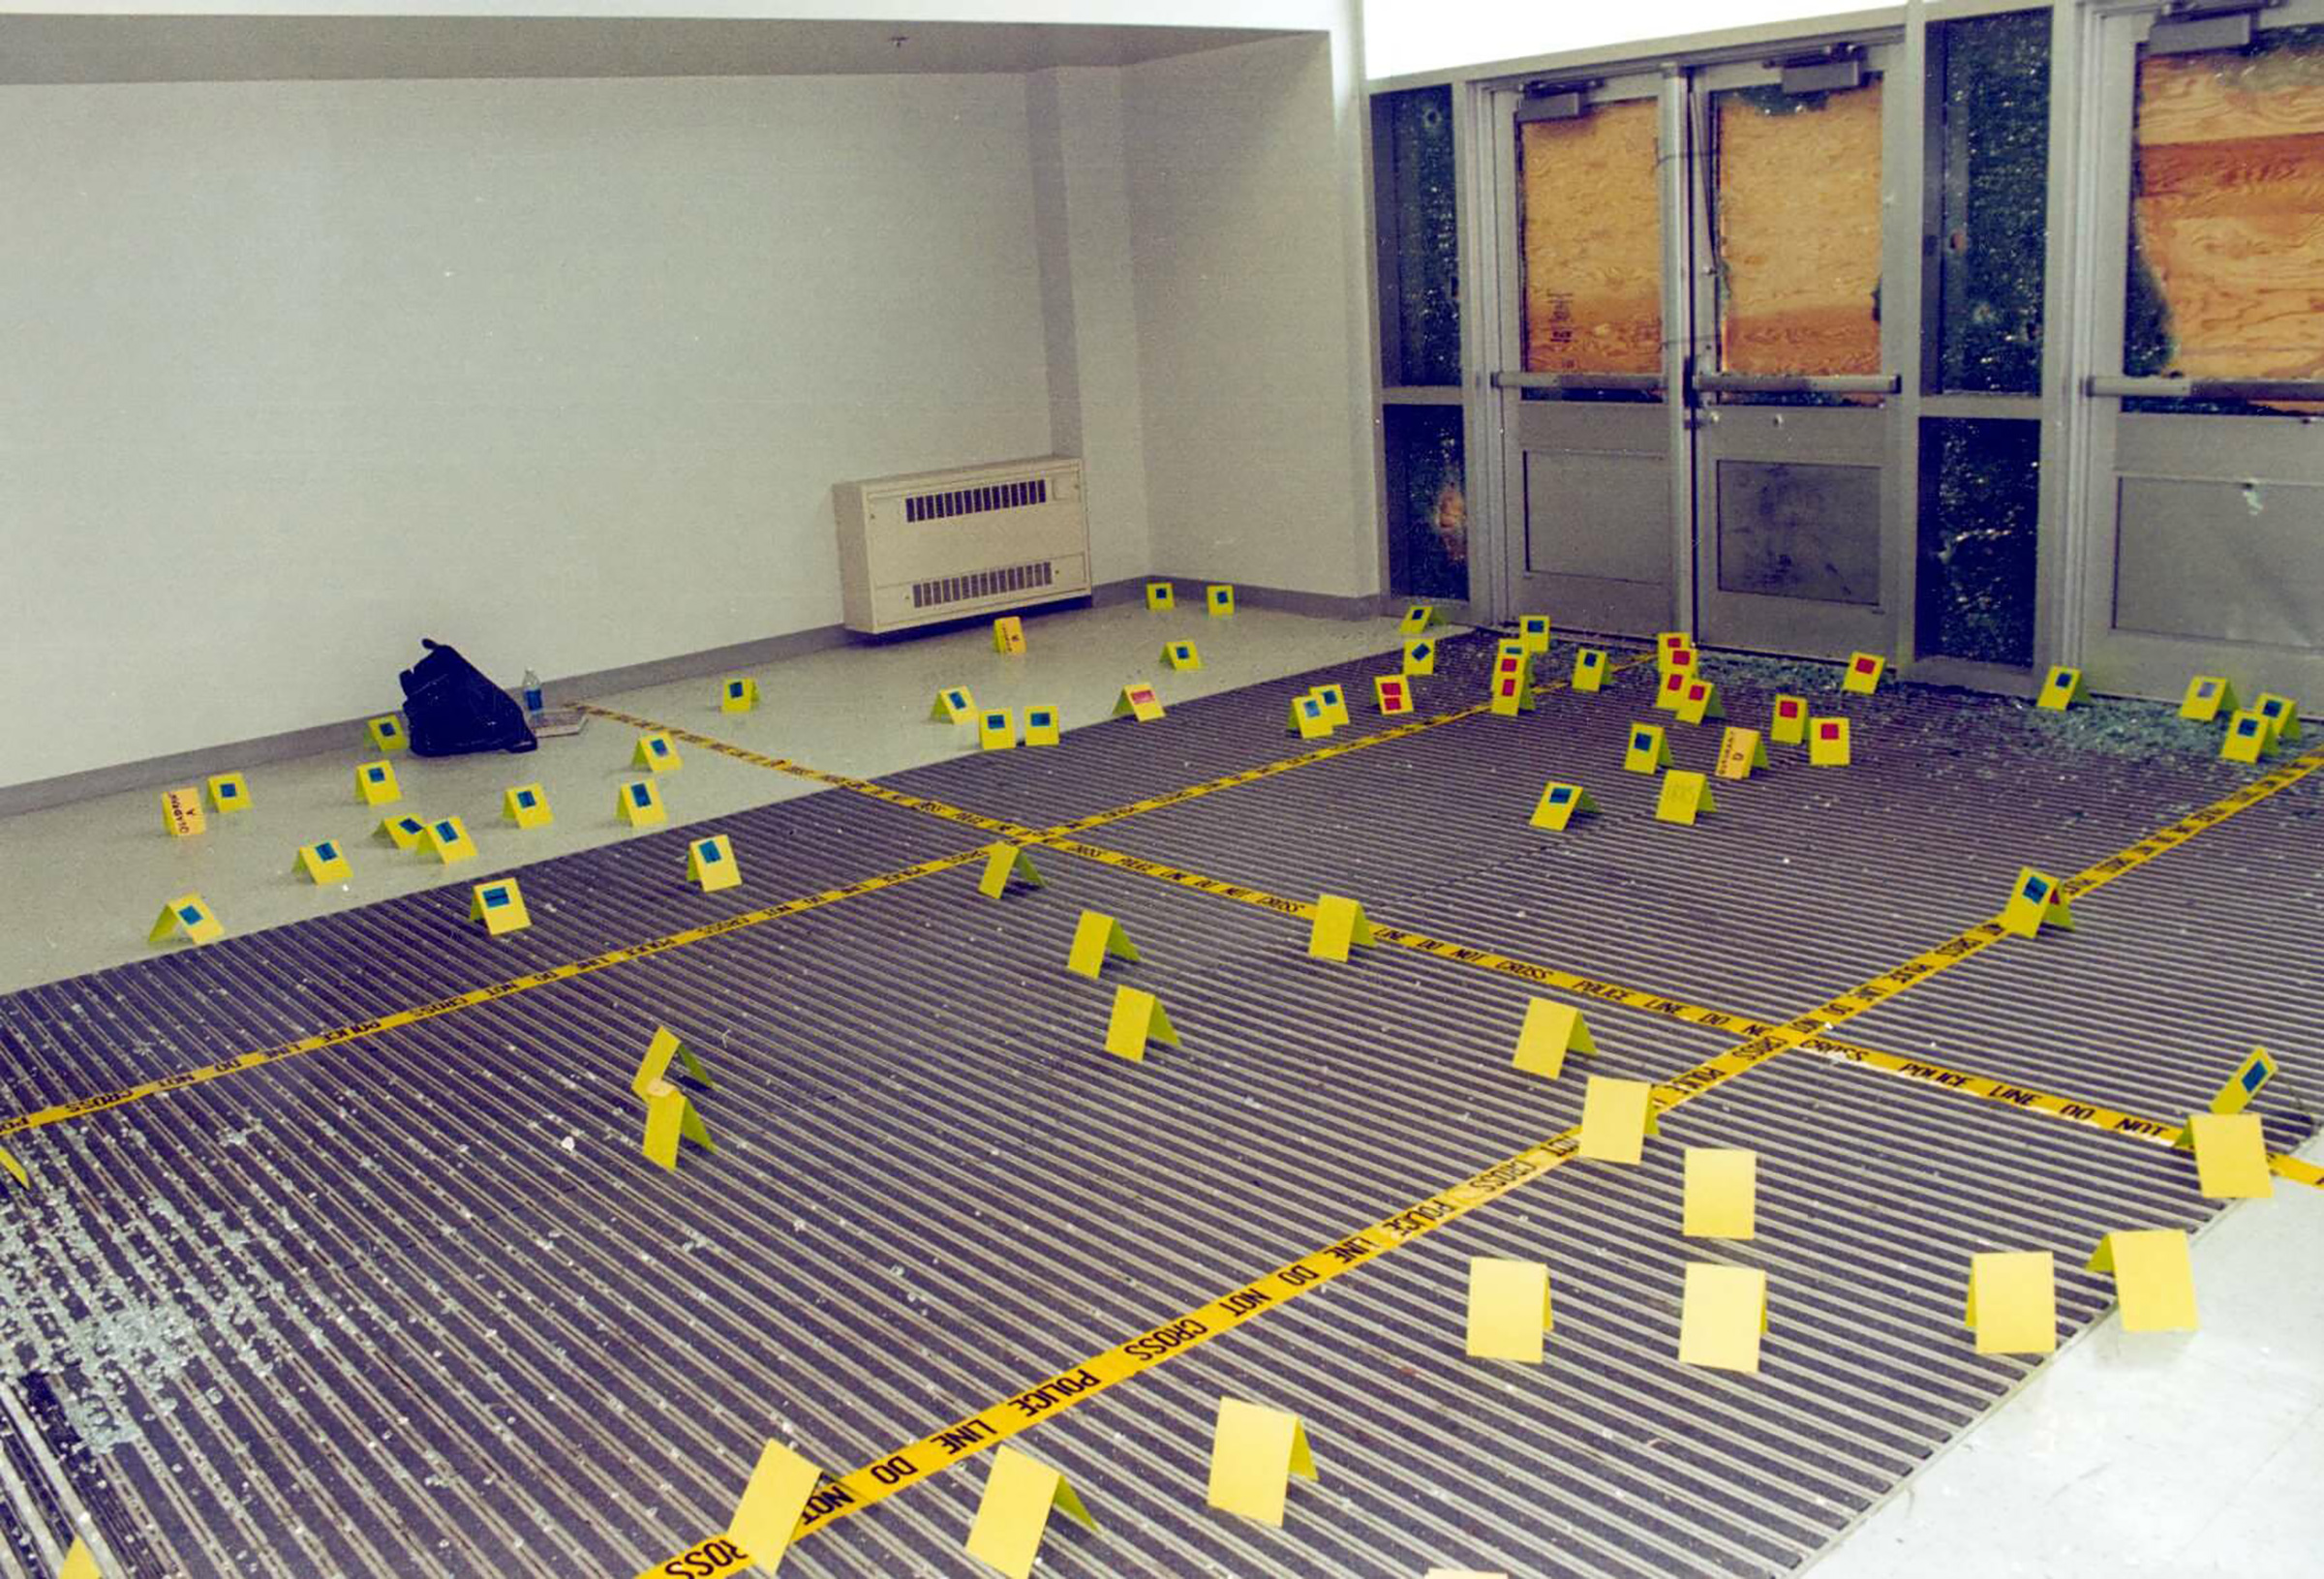 View of damage to the west entryway to Columbine High School where teenage gunmen Eric Harris and Dylan Klebold entered the school April 20, 1999 in Littleton, Colo. Flags mark points where evidence such as bullet casings were found.